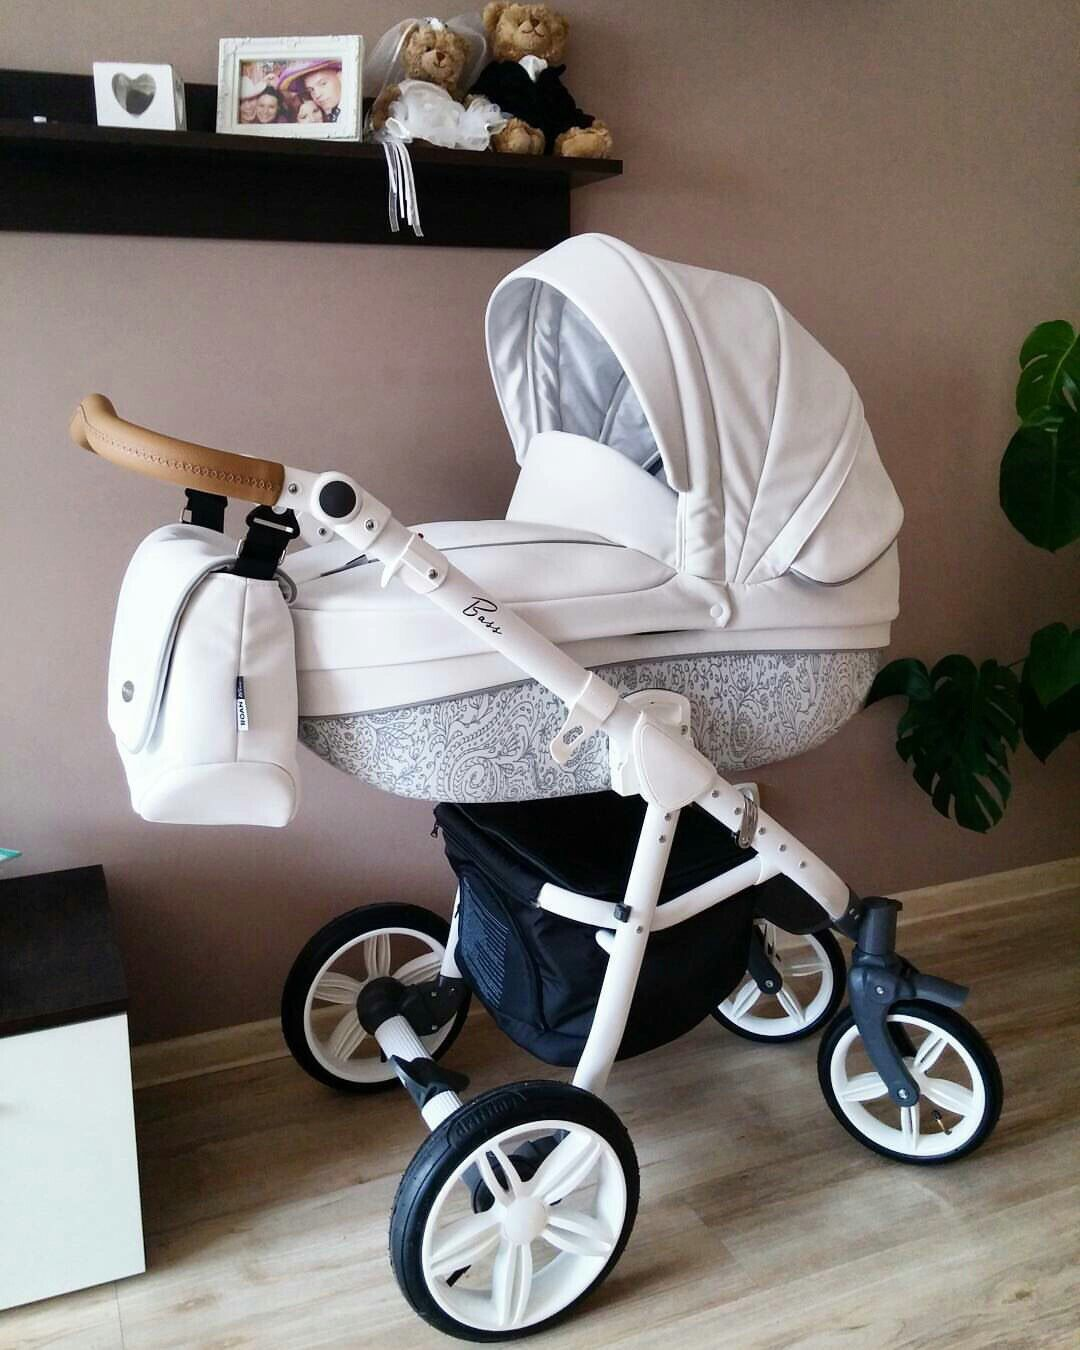 Idea by Angiela 19 on Nursery/Baby Products in 2020 | Baby ...